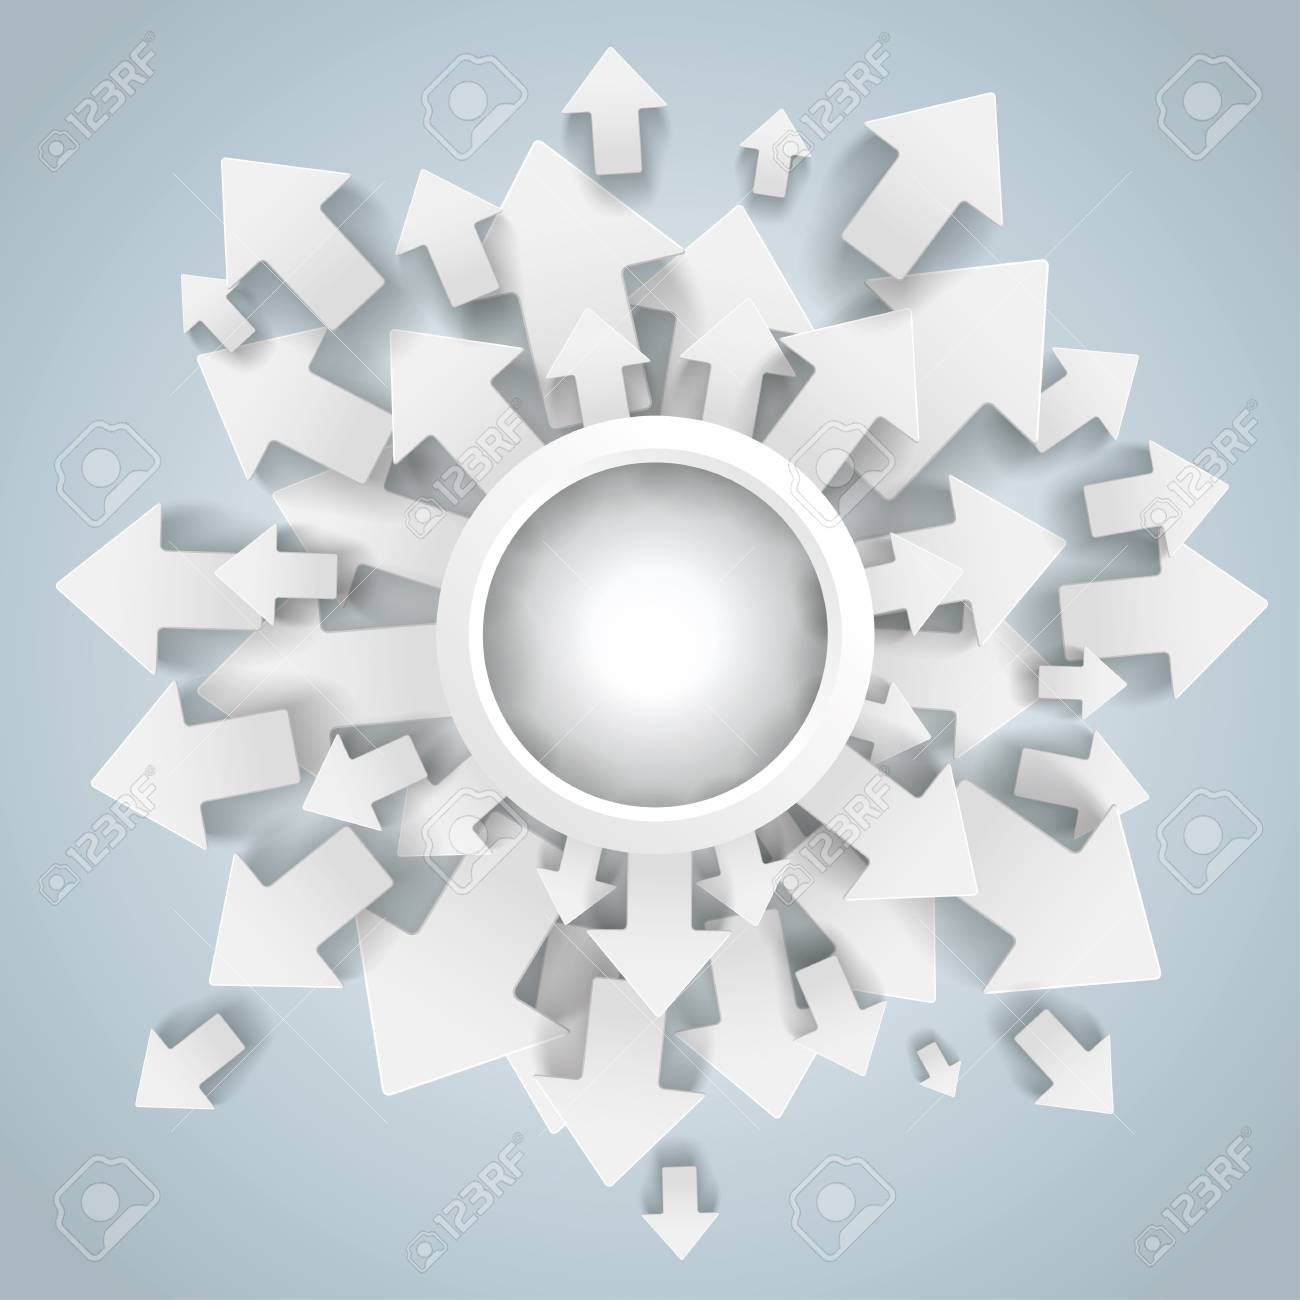 White arrows with center on the grey background. Stock Vector - 21076708